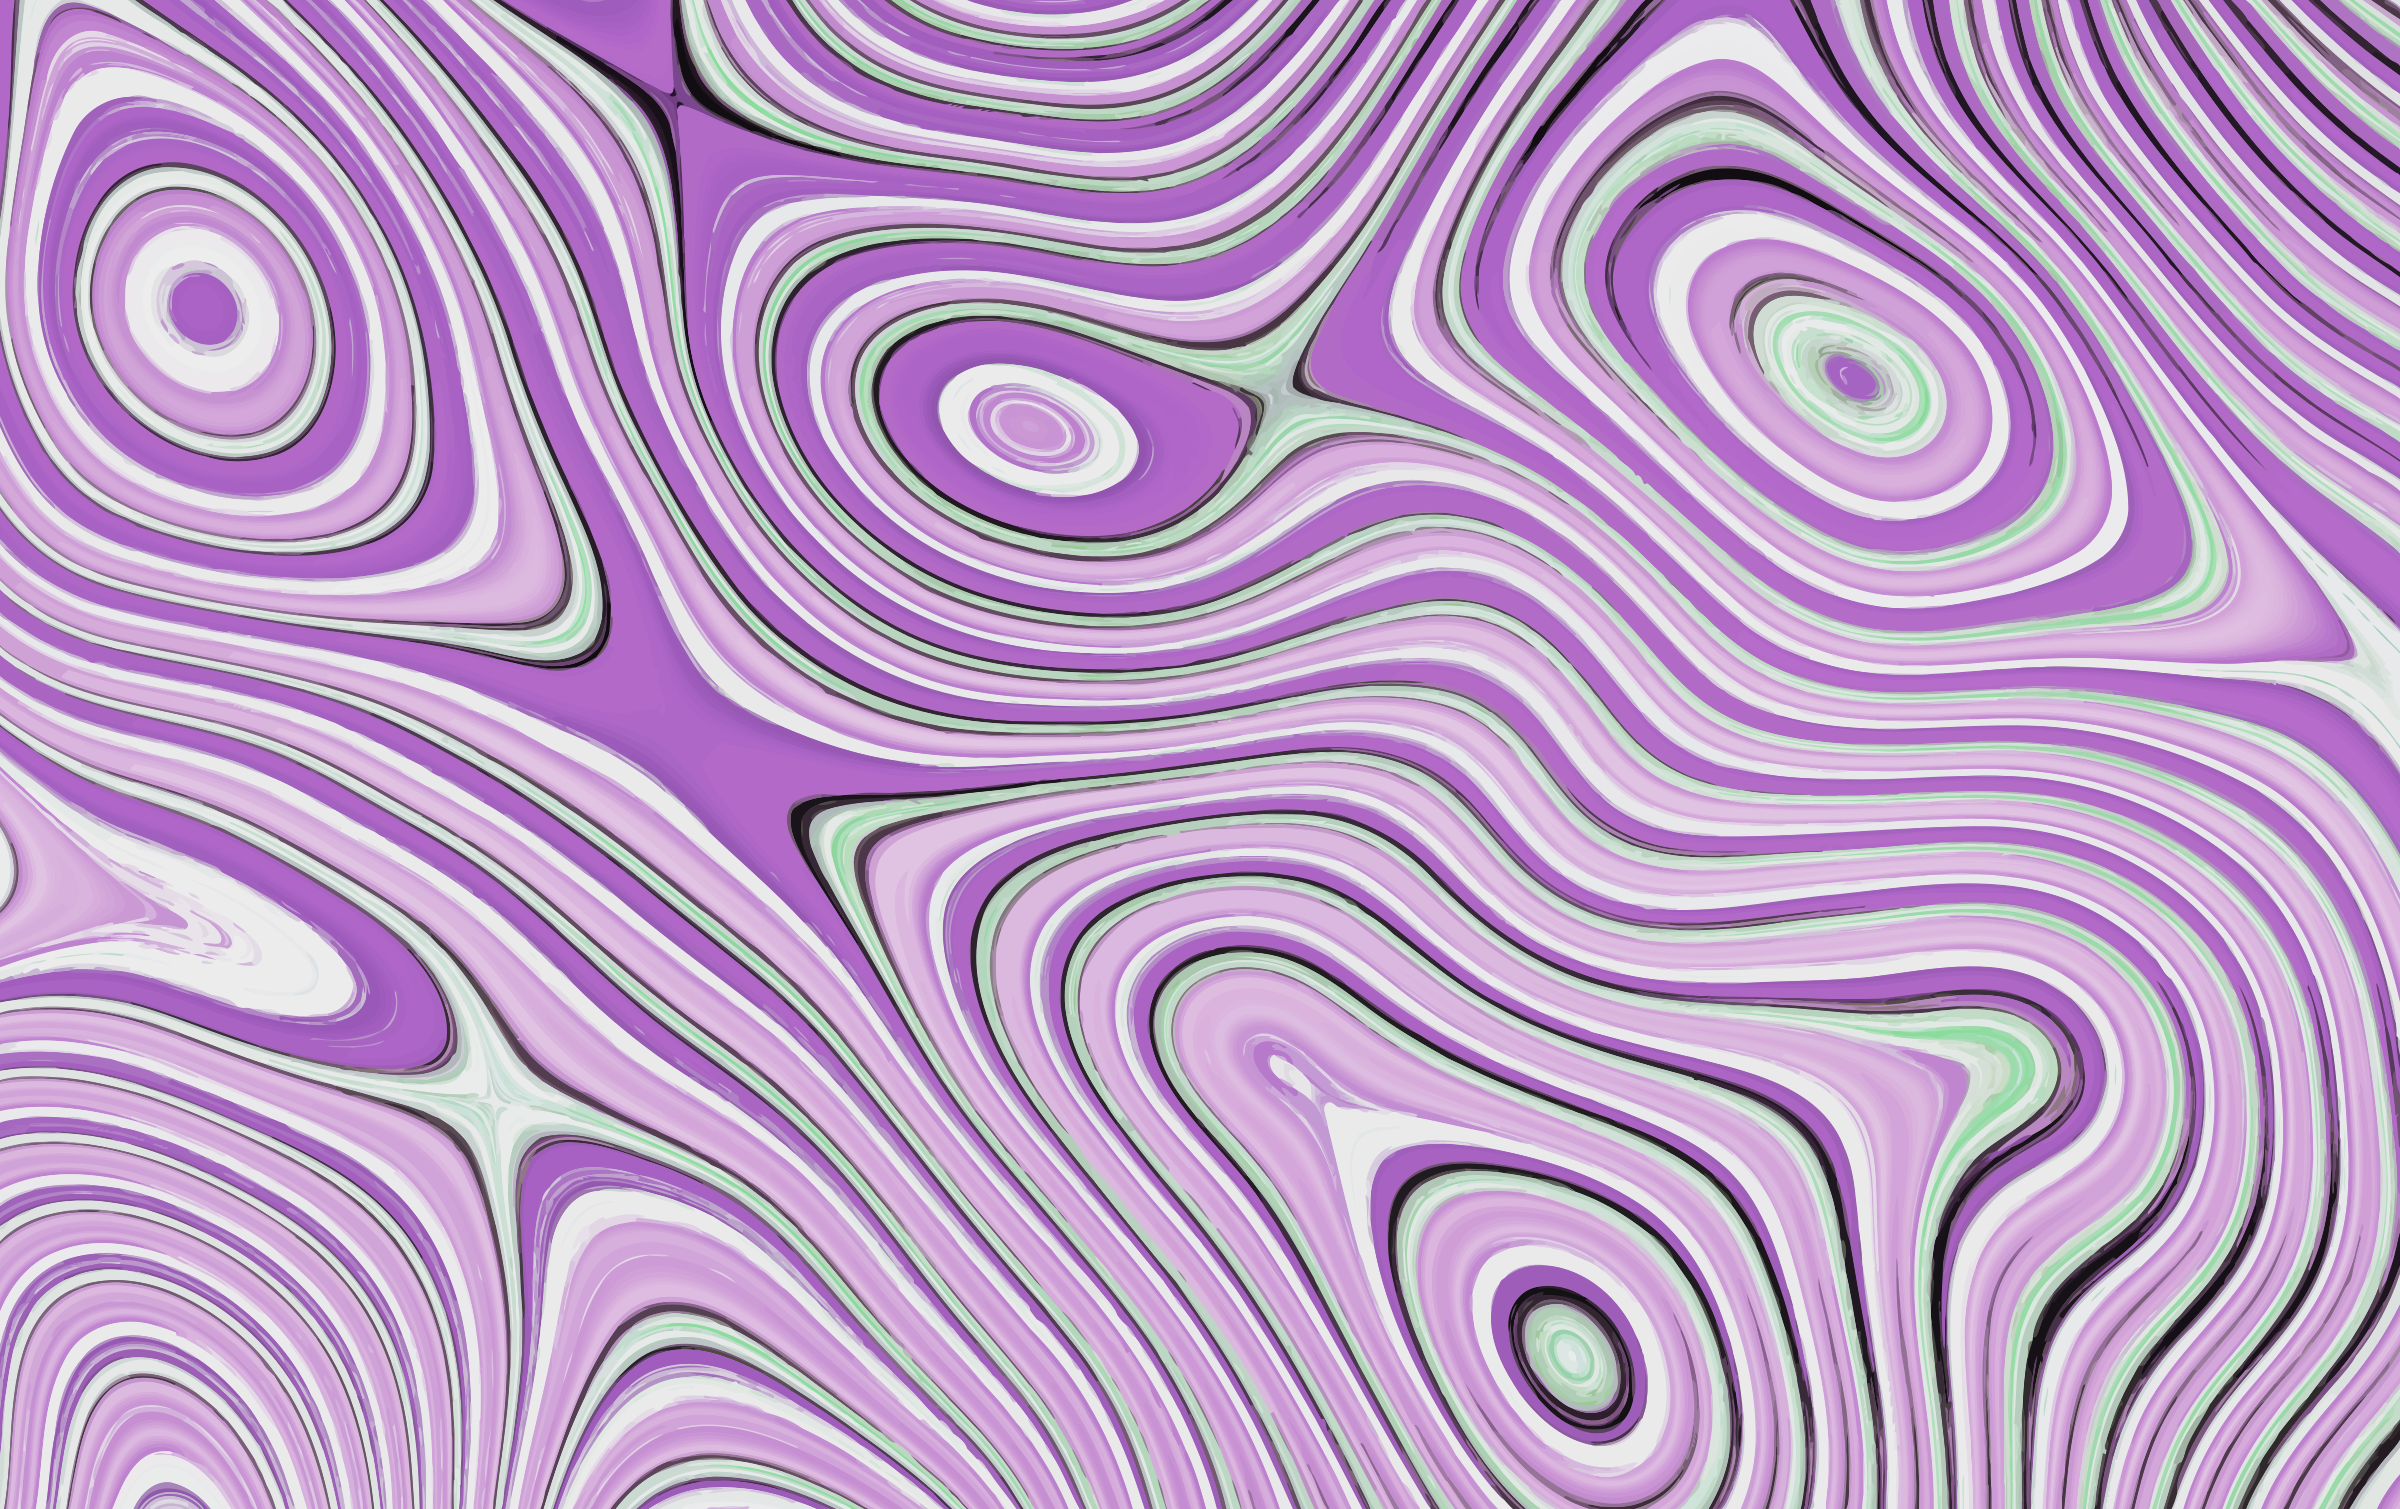 Background pattern 115 (colour 5) by Firkin